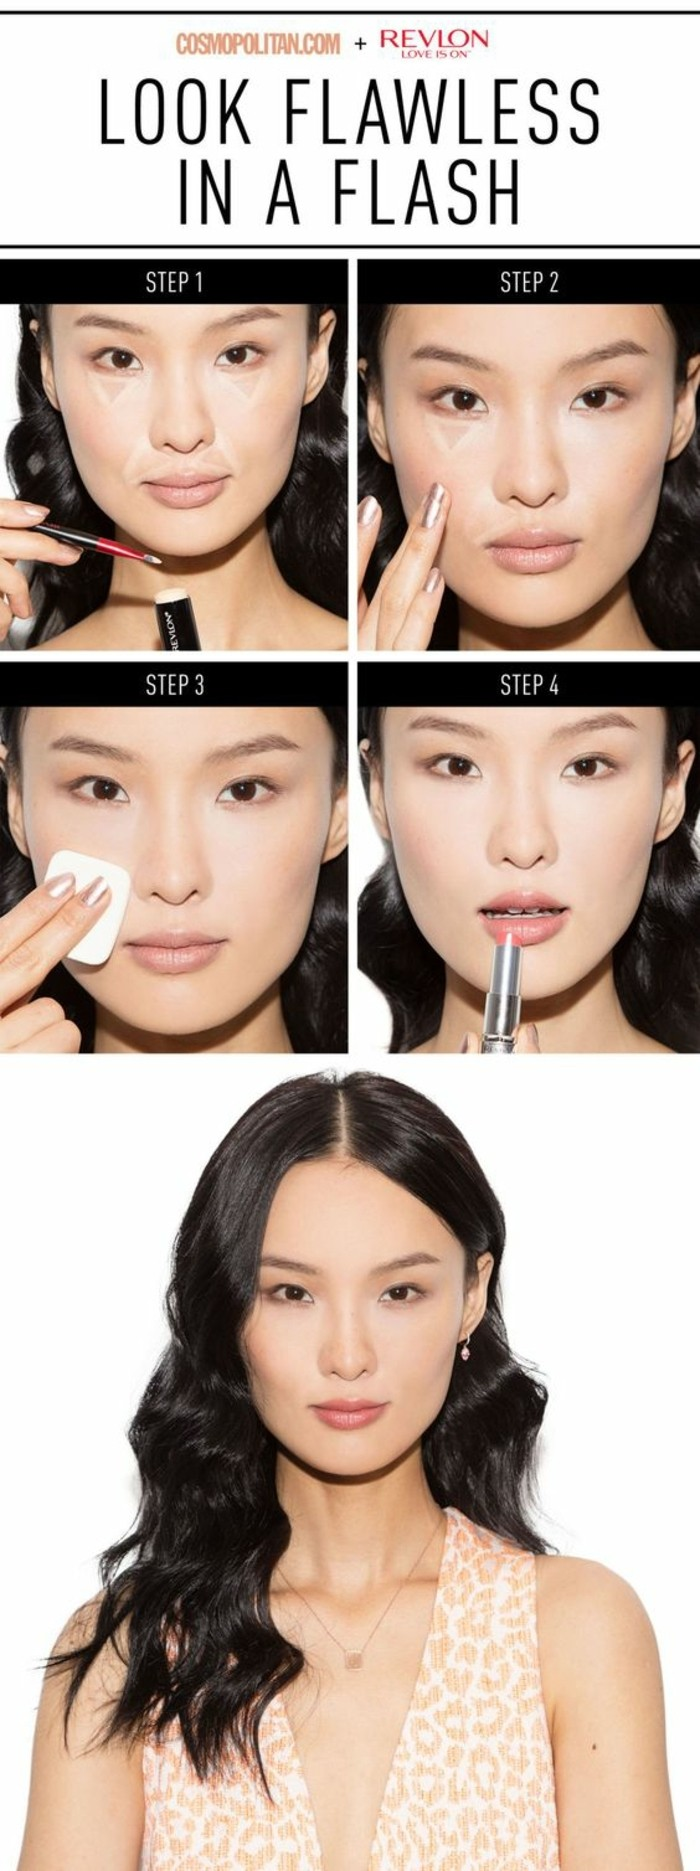 00-maquillage-asiatique-tuto-en-photos-comment-maquiller-des-yeux-en-amande